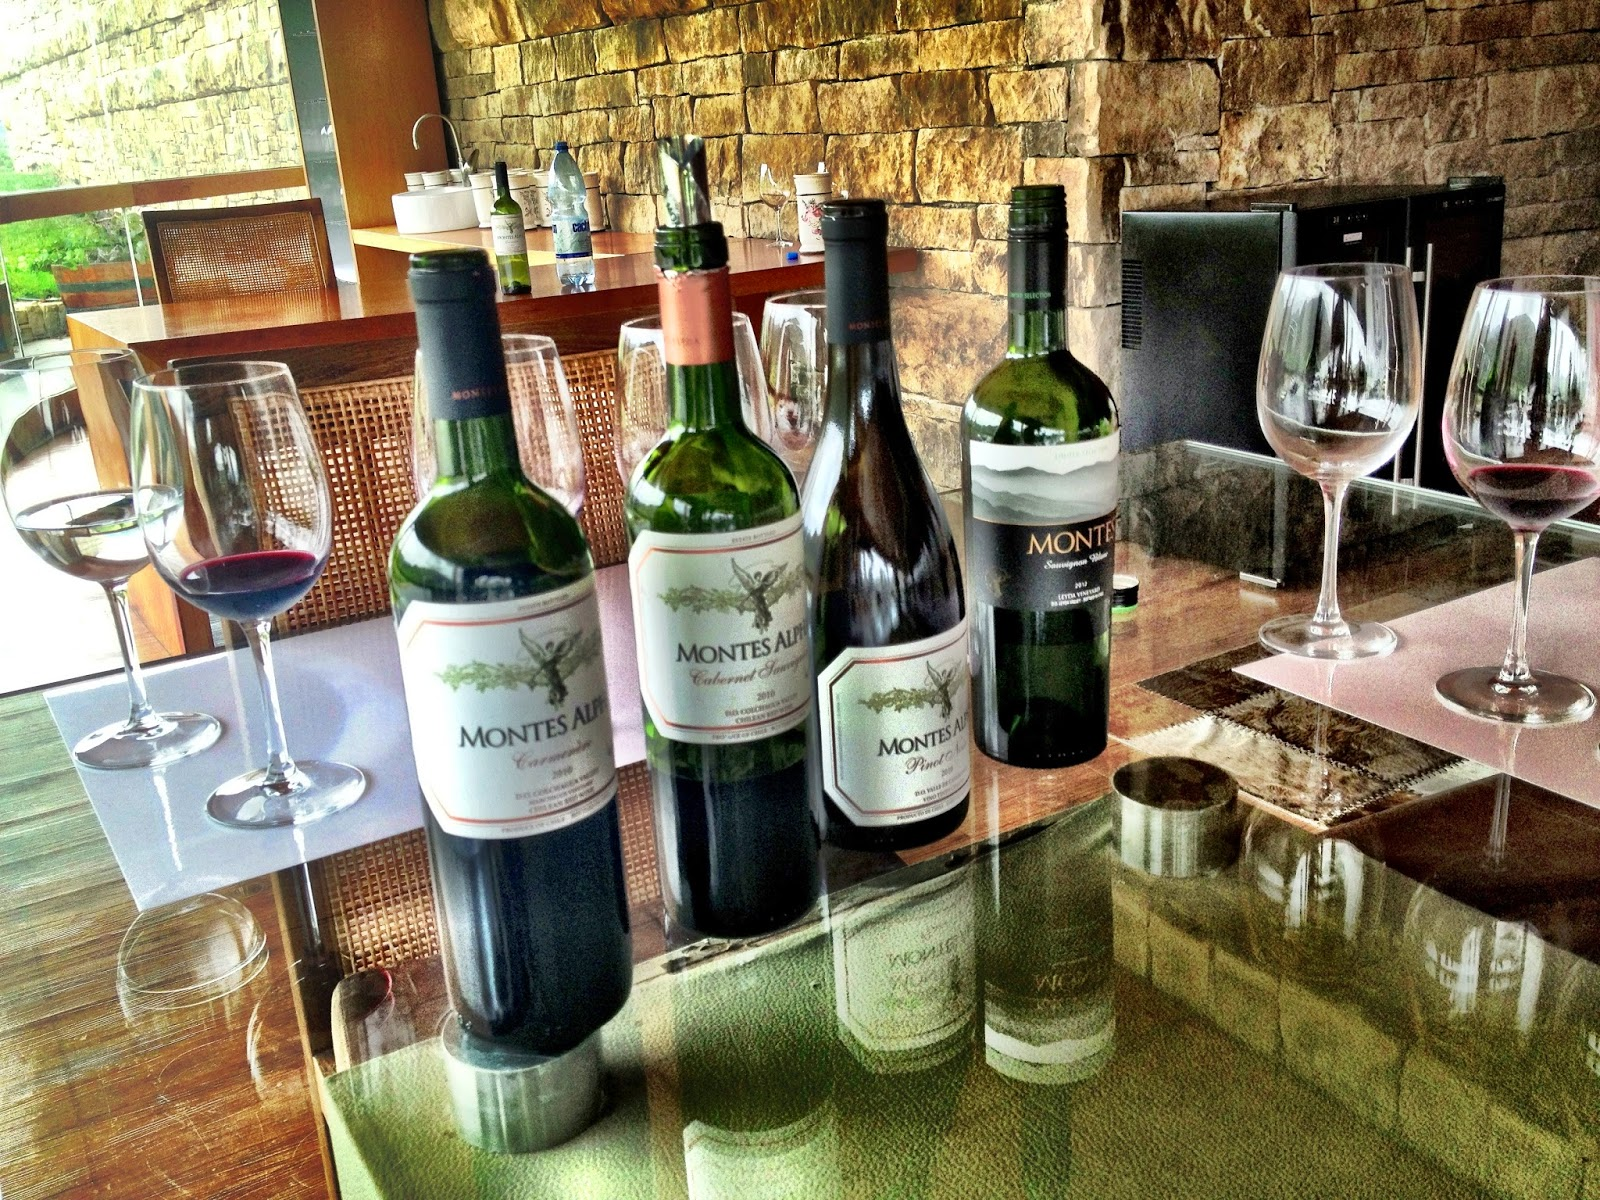 A selection of the Montes wines